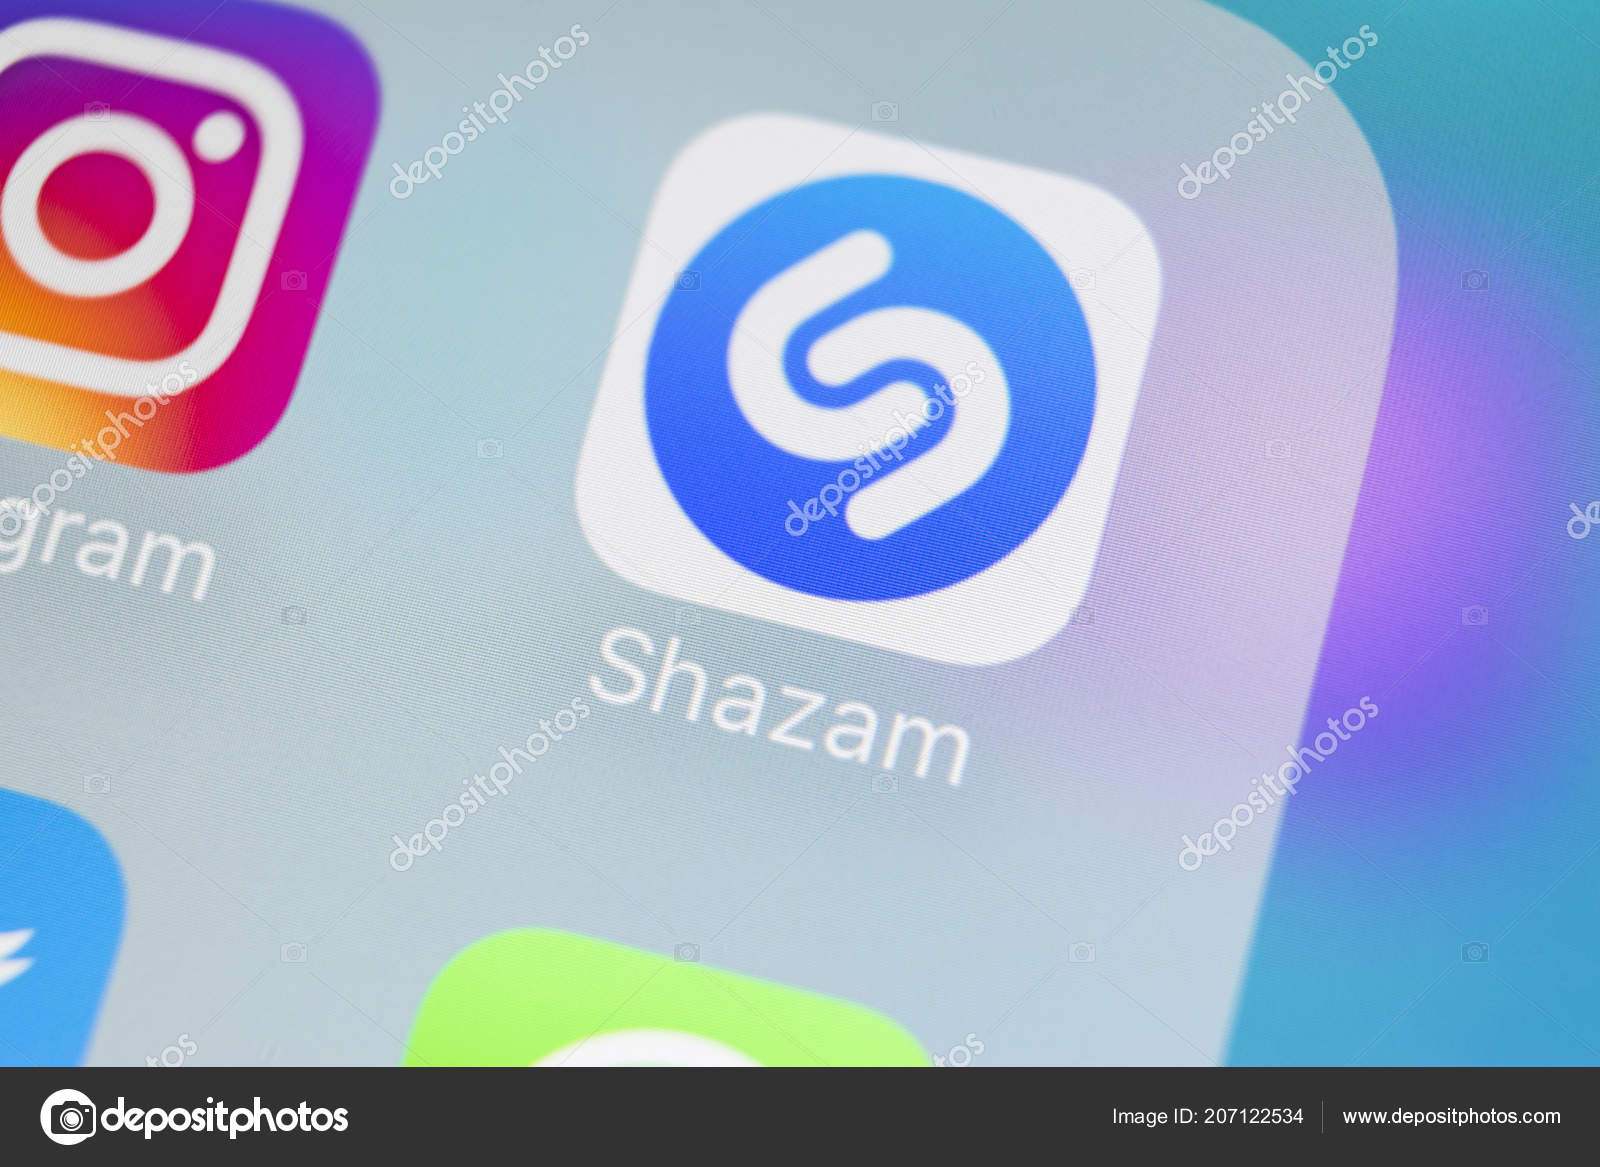 Sankt Petersburg Russia March 2018 Shazam Application Icon